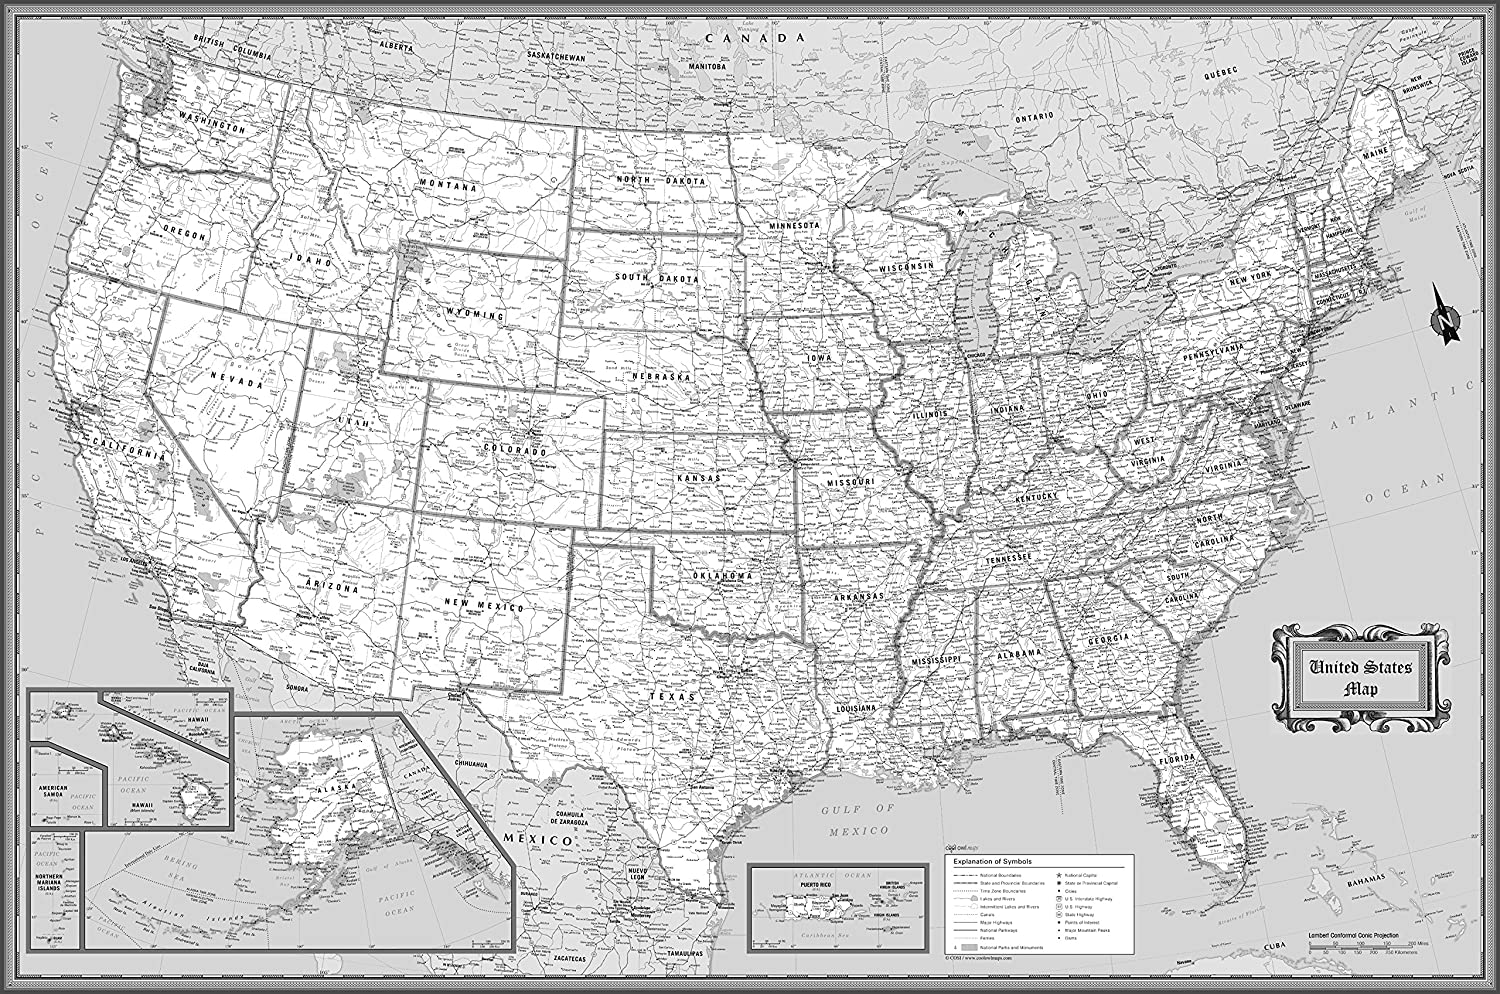 Amazon.com : CoolOwlMaps United States Wall Map Black & White Design ...